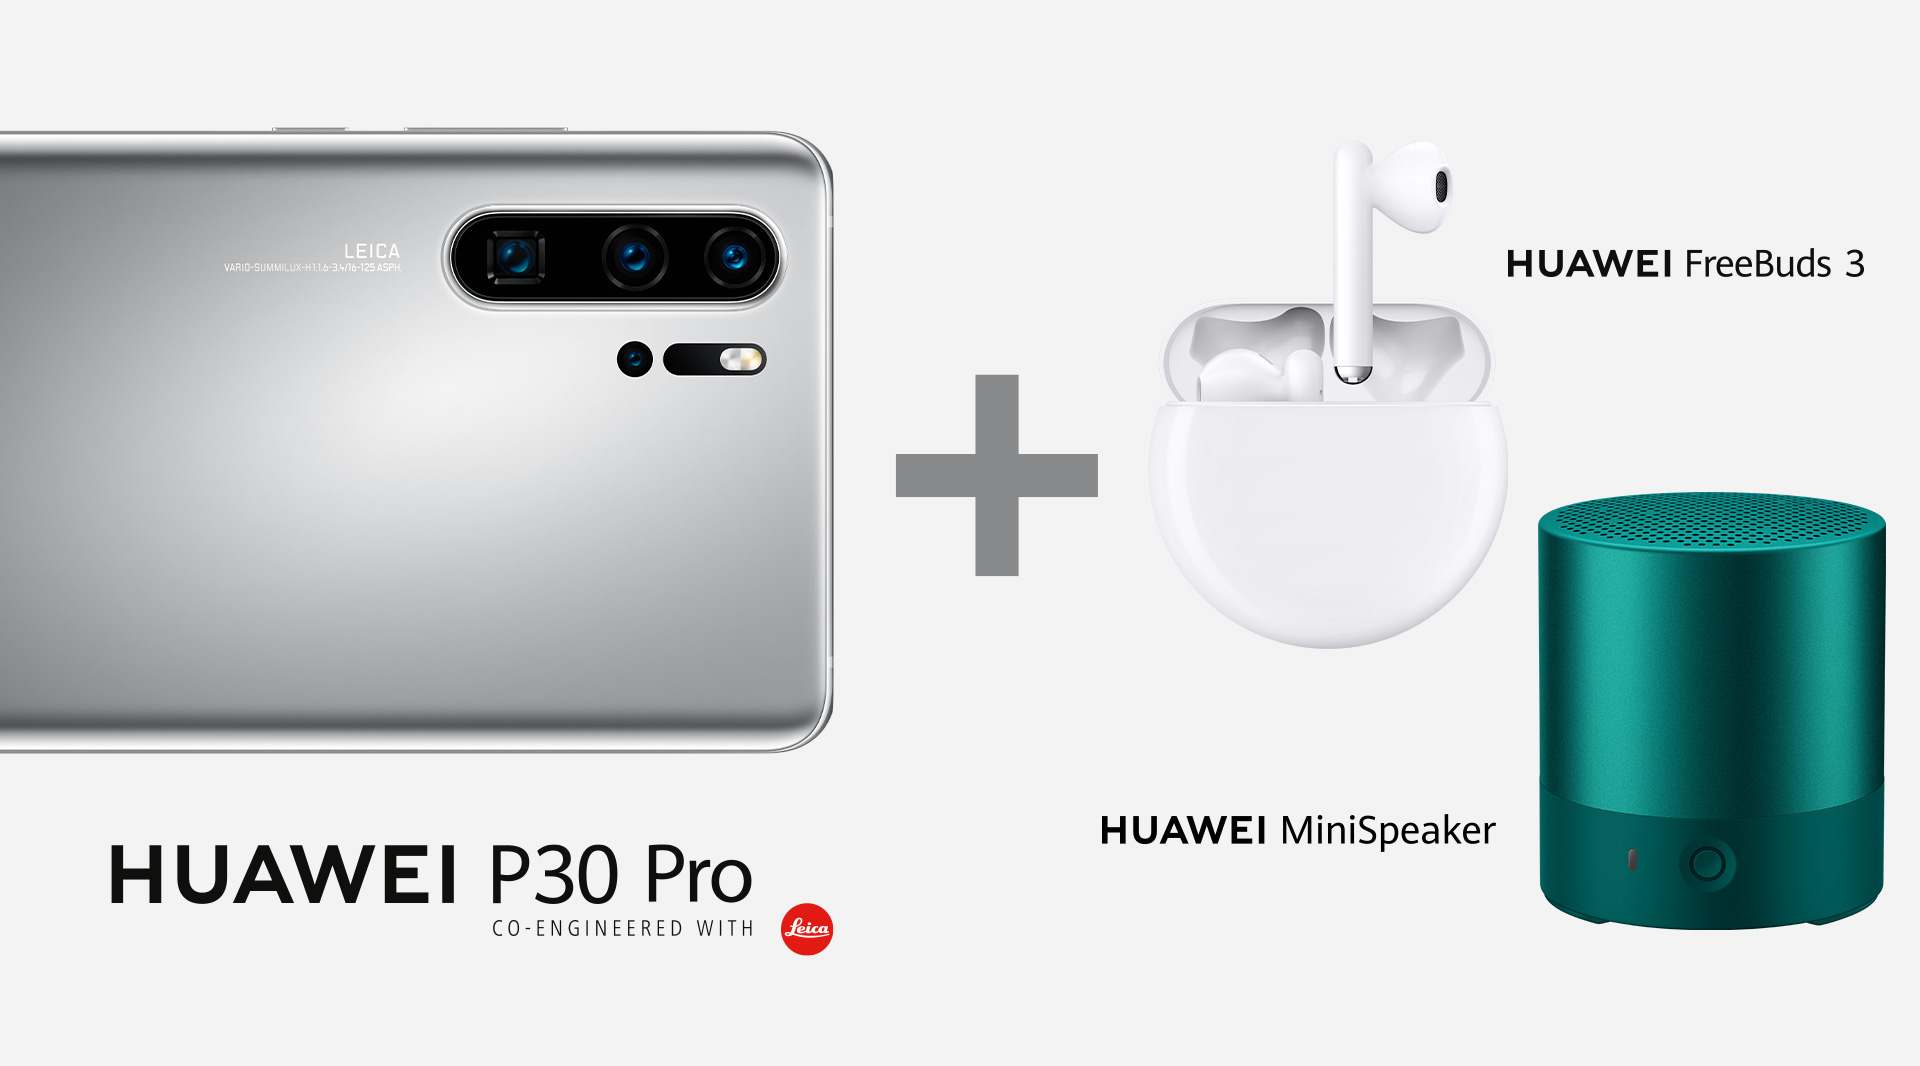 HUAWEI P30 Pro NEW EDITION mit FreeBuds 3 und Mini Speaker